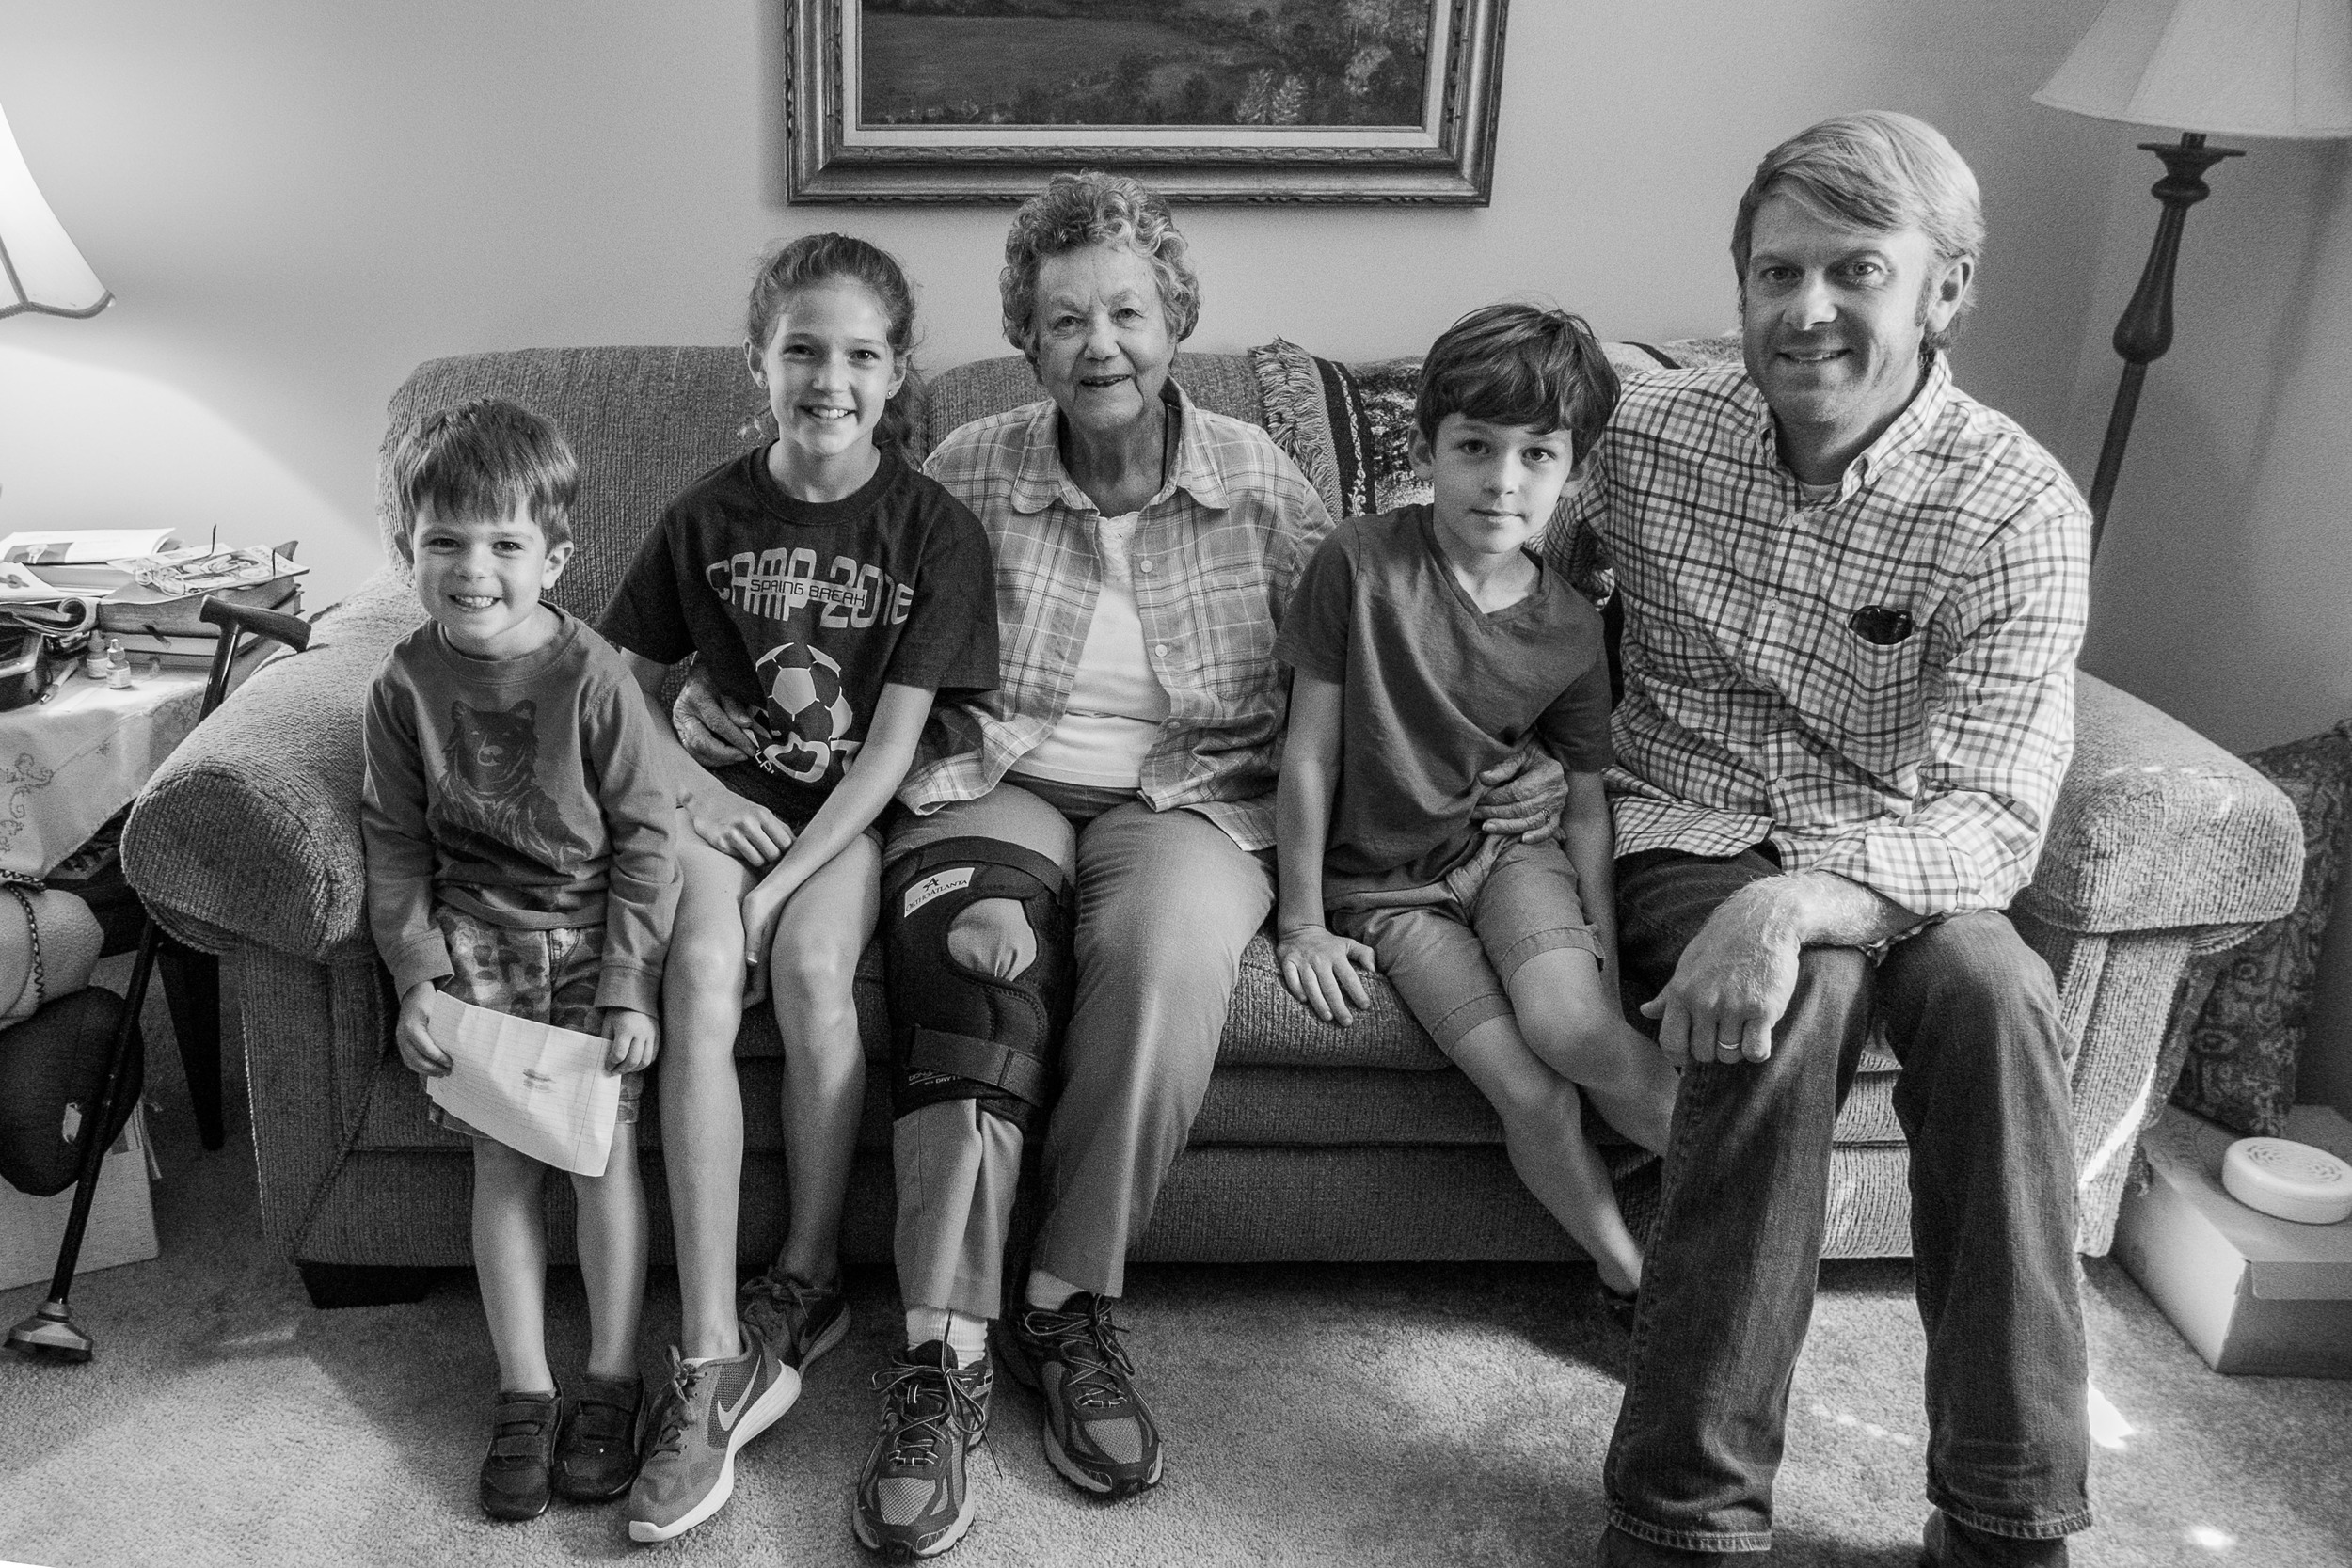 Grandmother Martz was kind enough to put up with the boys running around her apartment, throwing paper airplanes and treating her rocking recliner like an amusement park ride while we visited. God bless her.